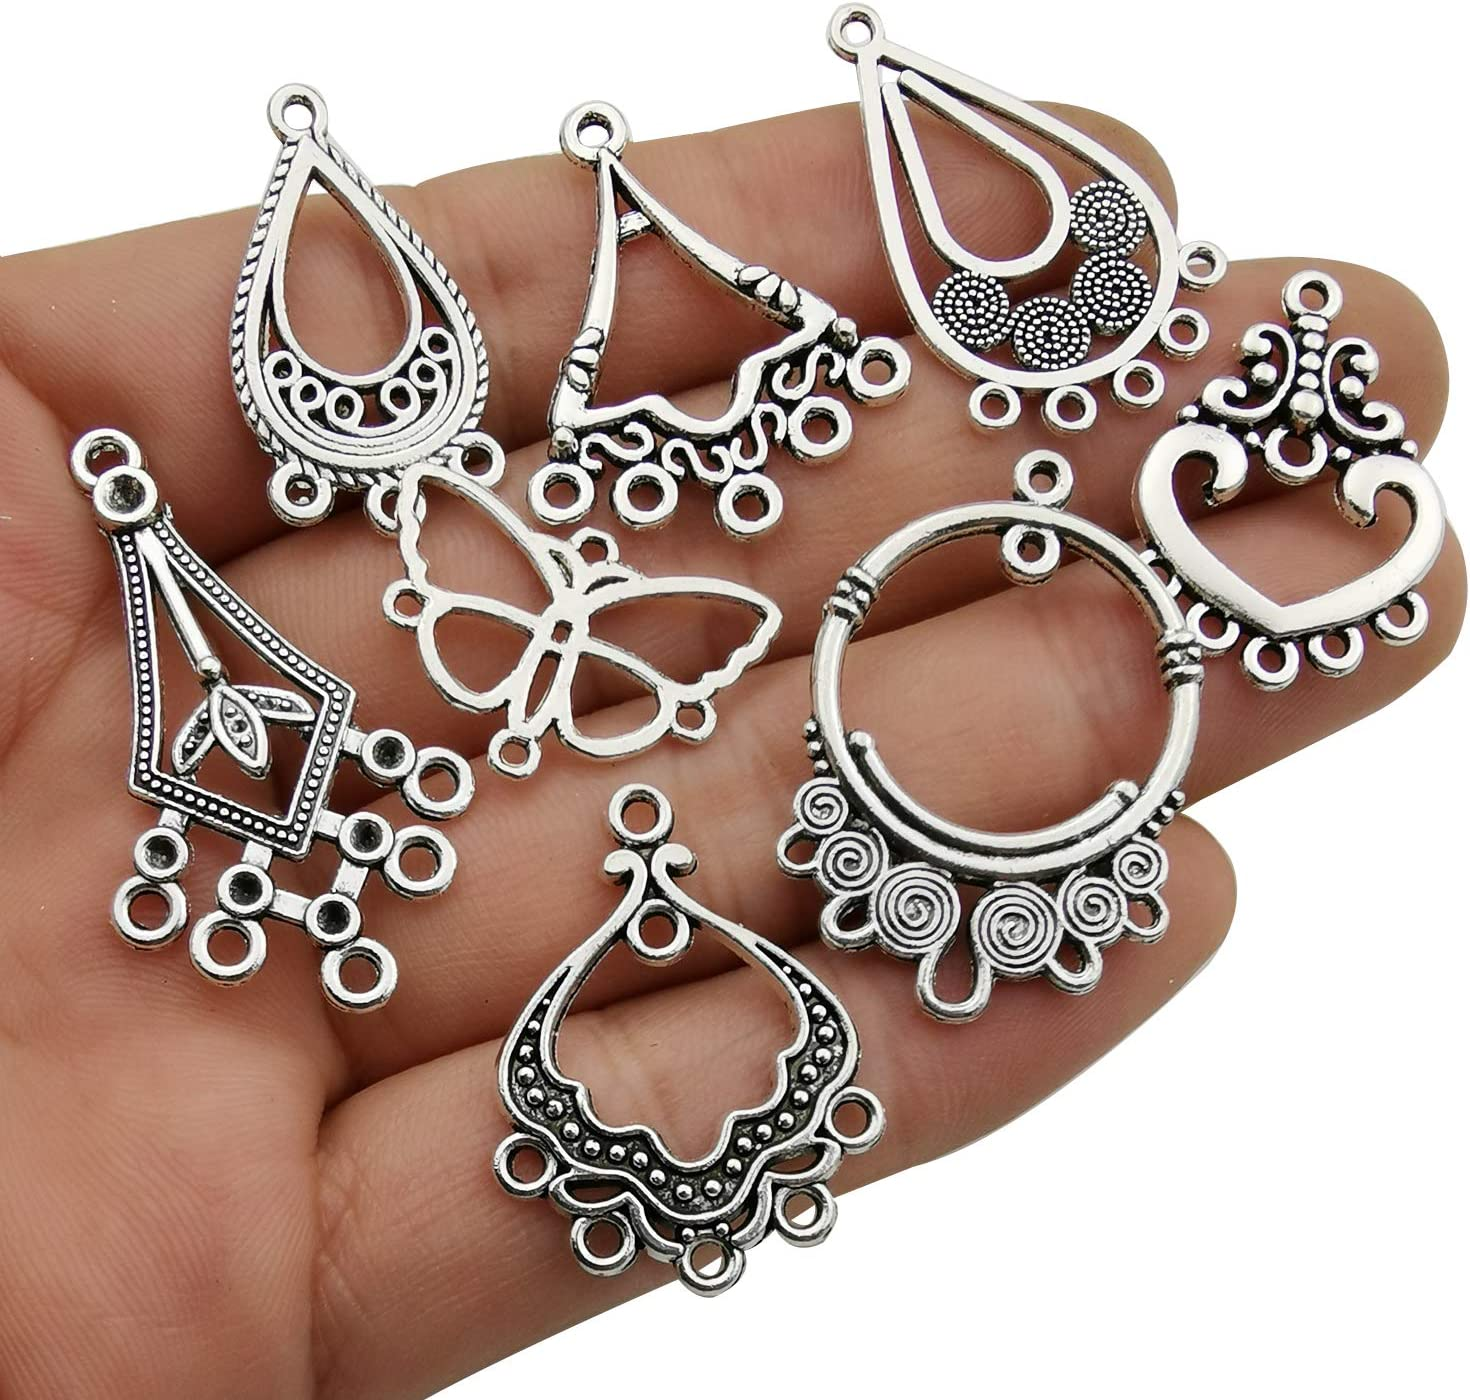 lady-muck1 3mm 60 Good Quality Silver Metal Charm Hanger Beads Inner Hole